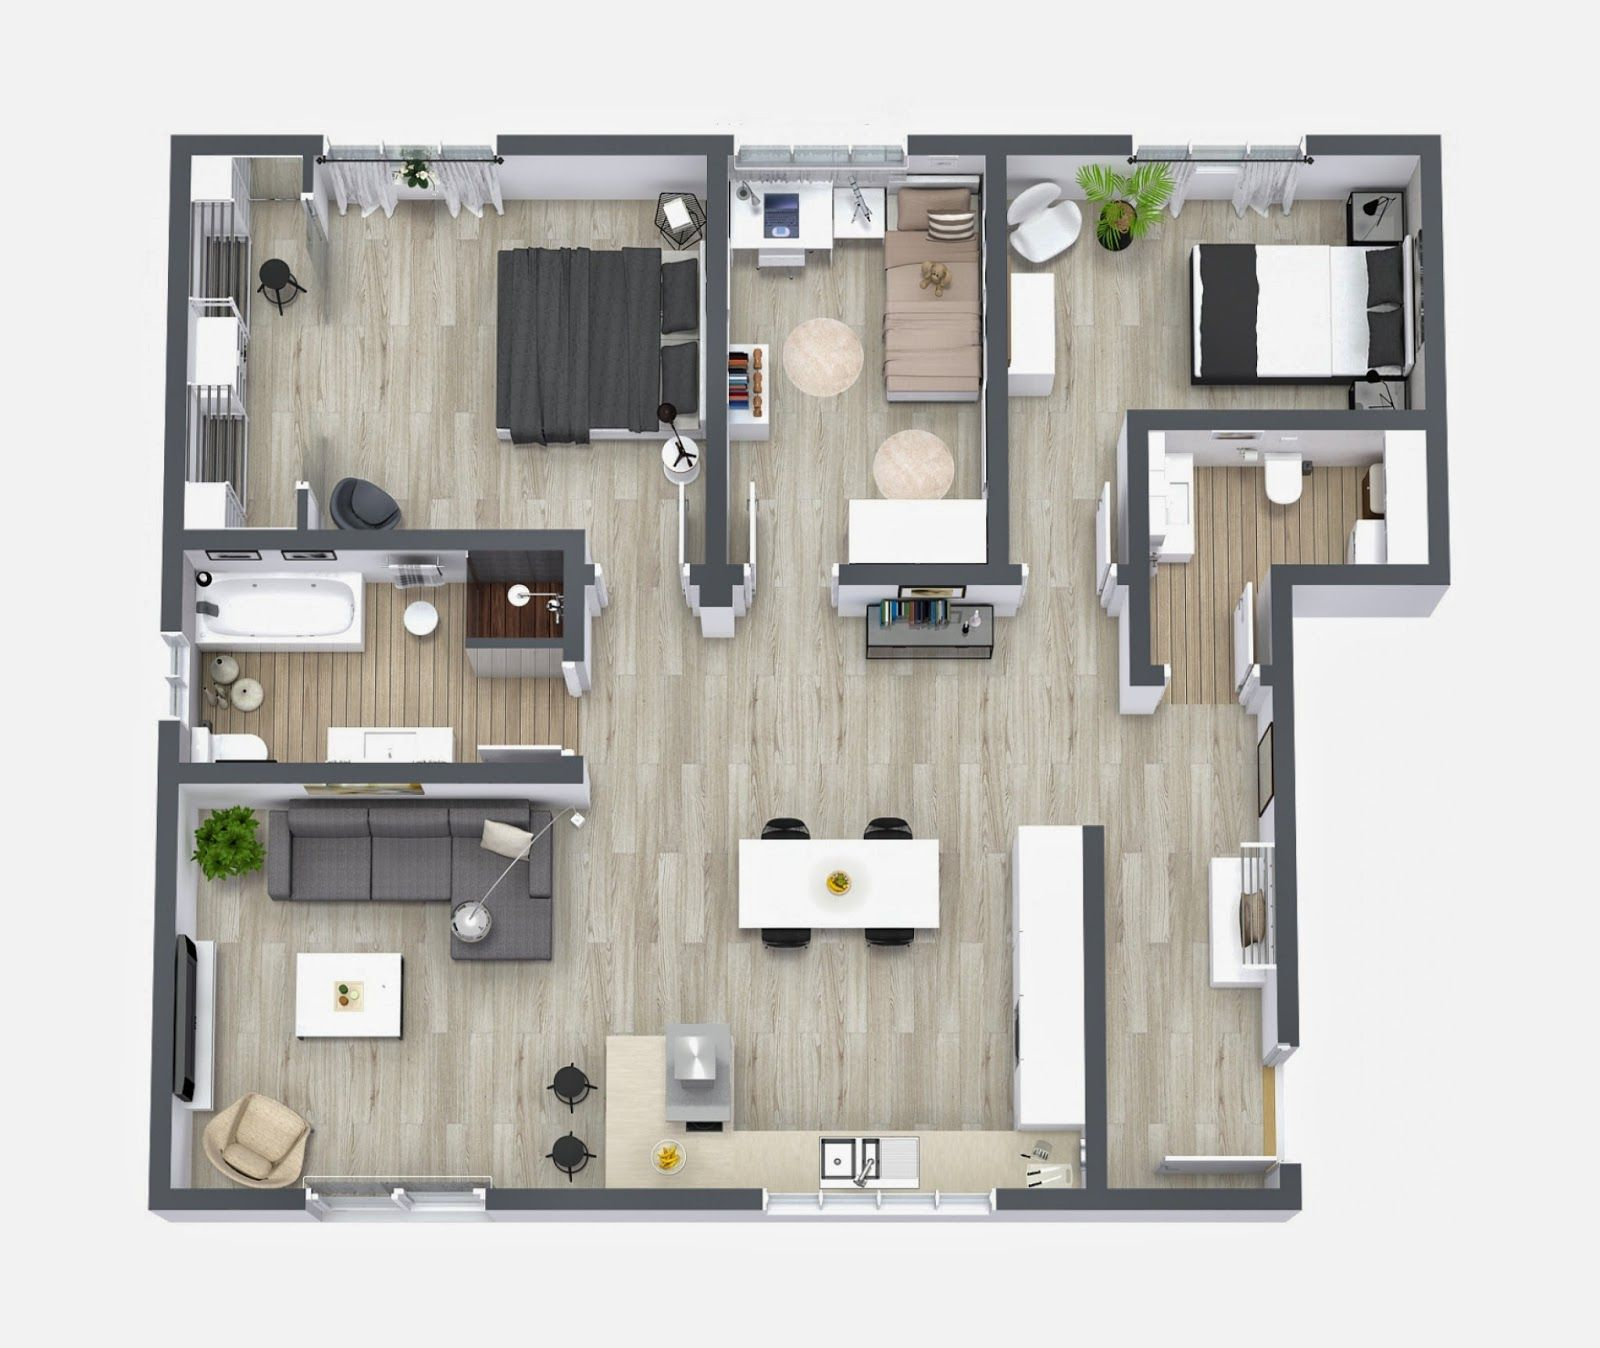 Roomsketcher home design software interactive floor plan for Interactive floor plan software